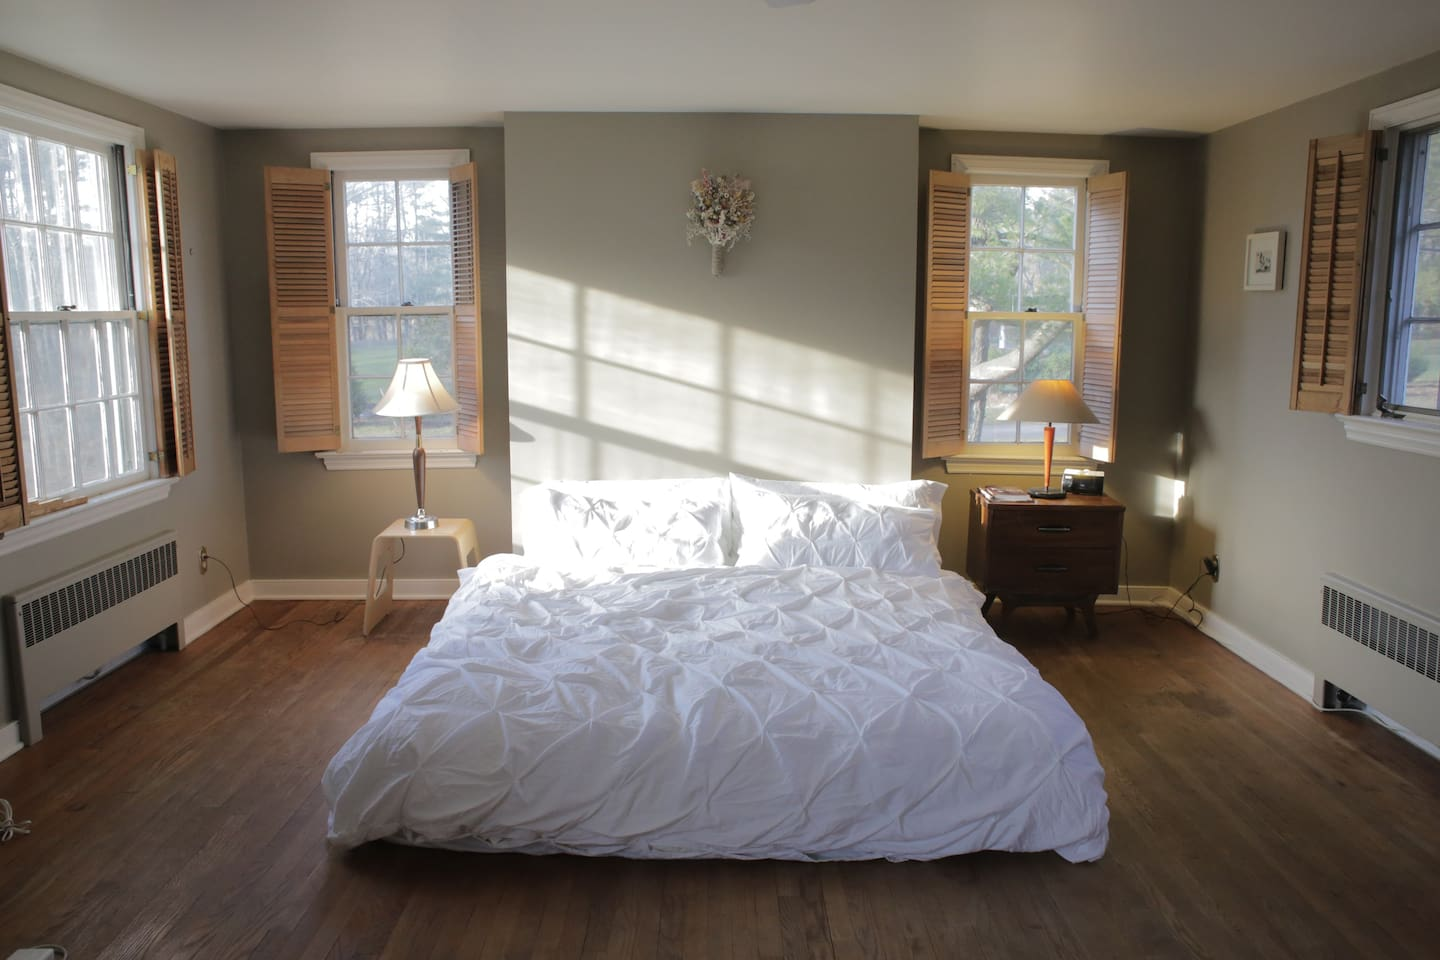 This bedroom is quite large with windows facing north, south, east and west